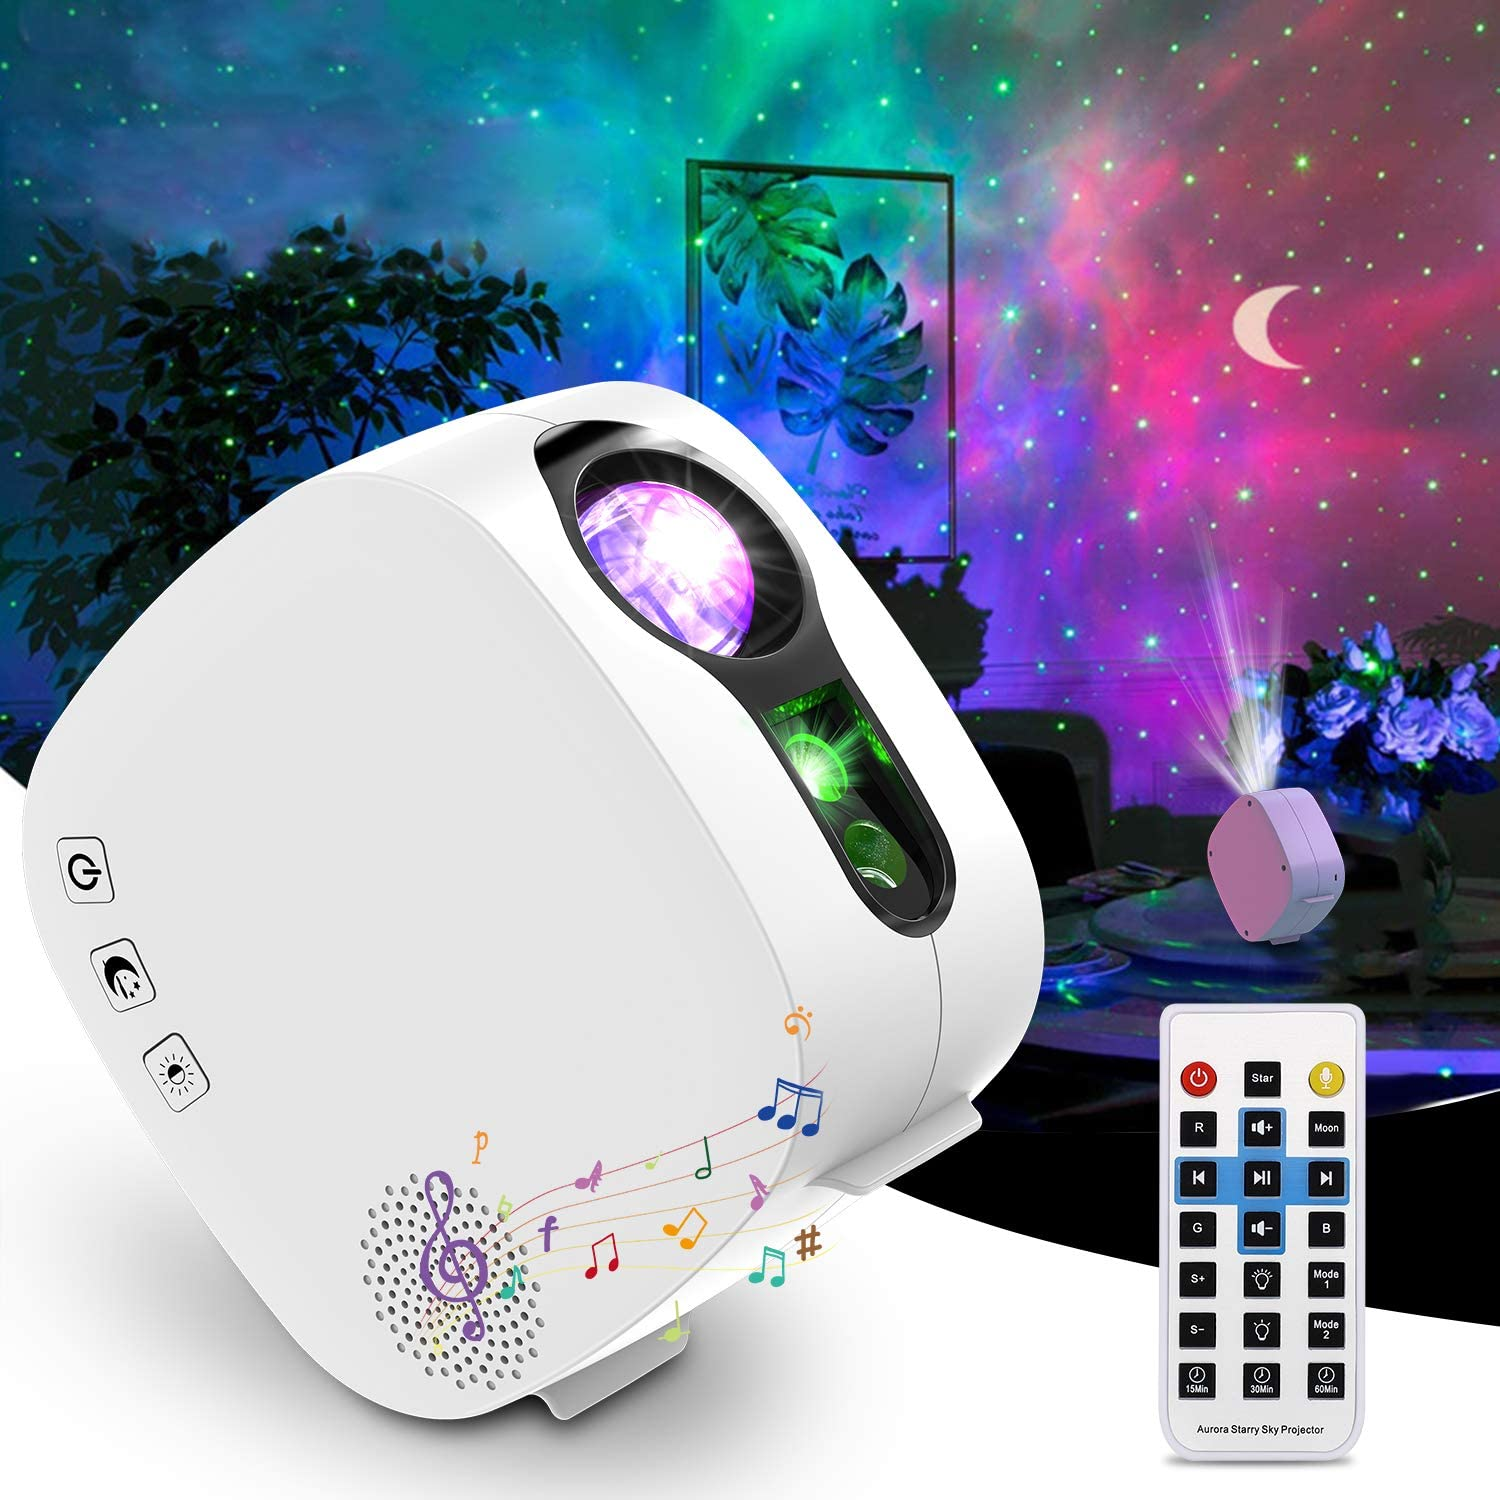 Galaxy Projector Night Light Projector with Bluetooth Speaker, Starlight Projector with Remote Control, Timer Setting, Nebula Light Projector for Baby/Kids/Adults/Home Theatre